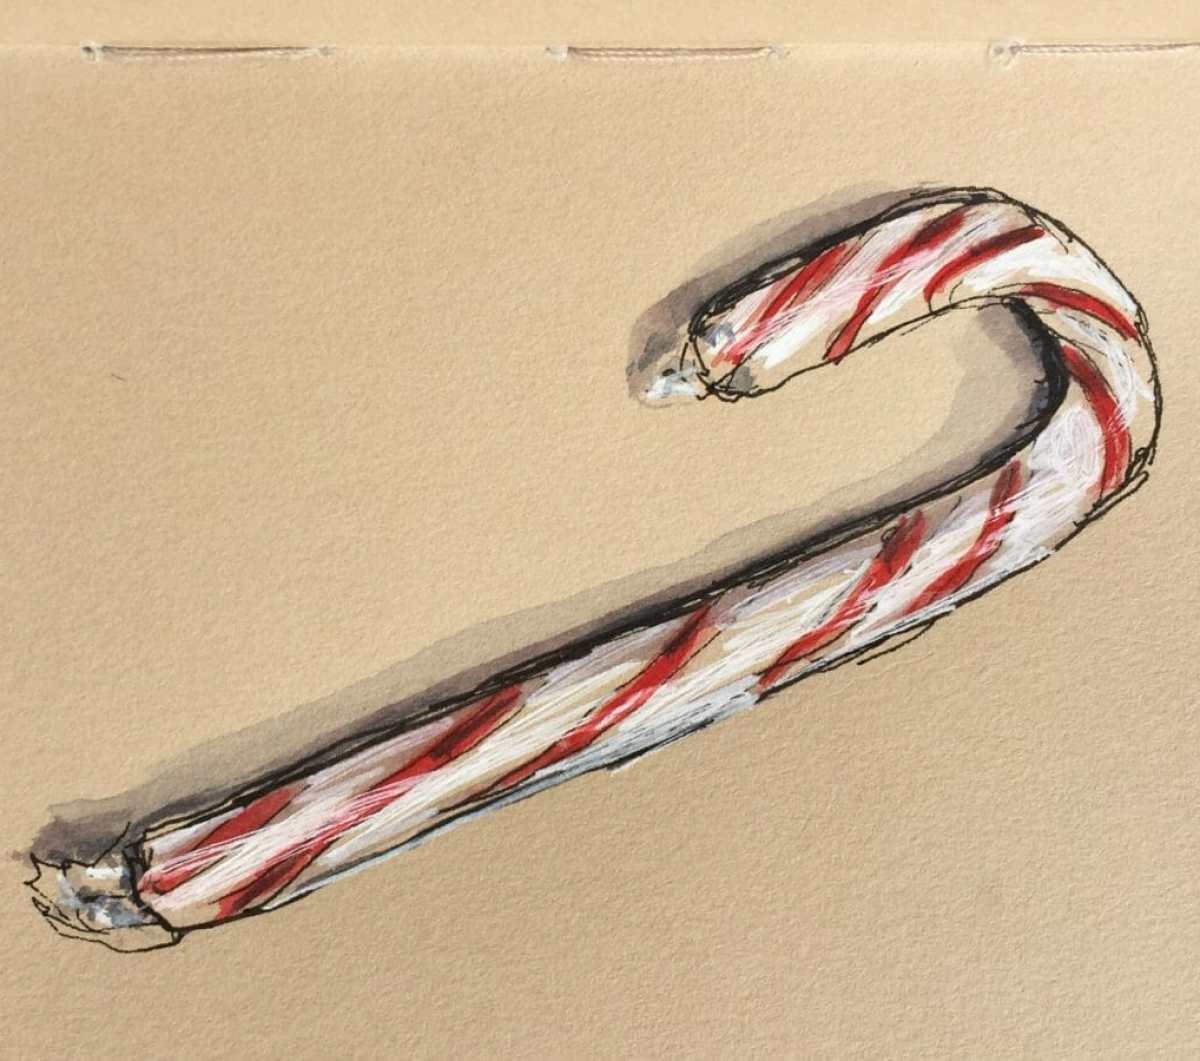 #WorldWatercolorGroup - Day 1 - Candy Canes - Doodlewash